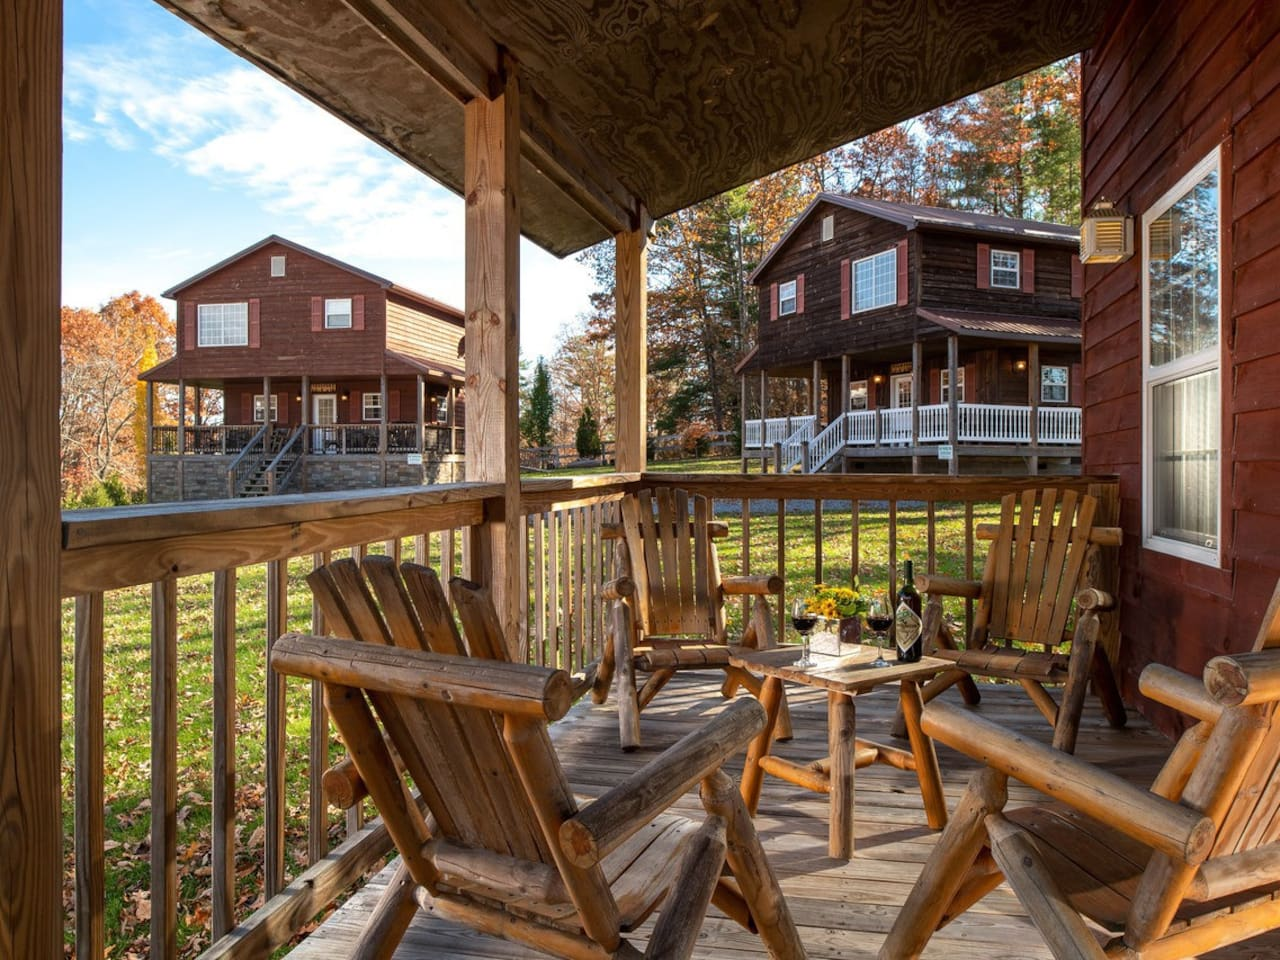 Front porch with some great adirondack chairs to relax in